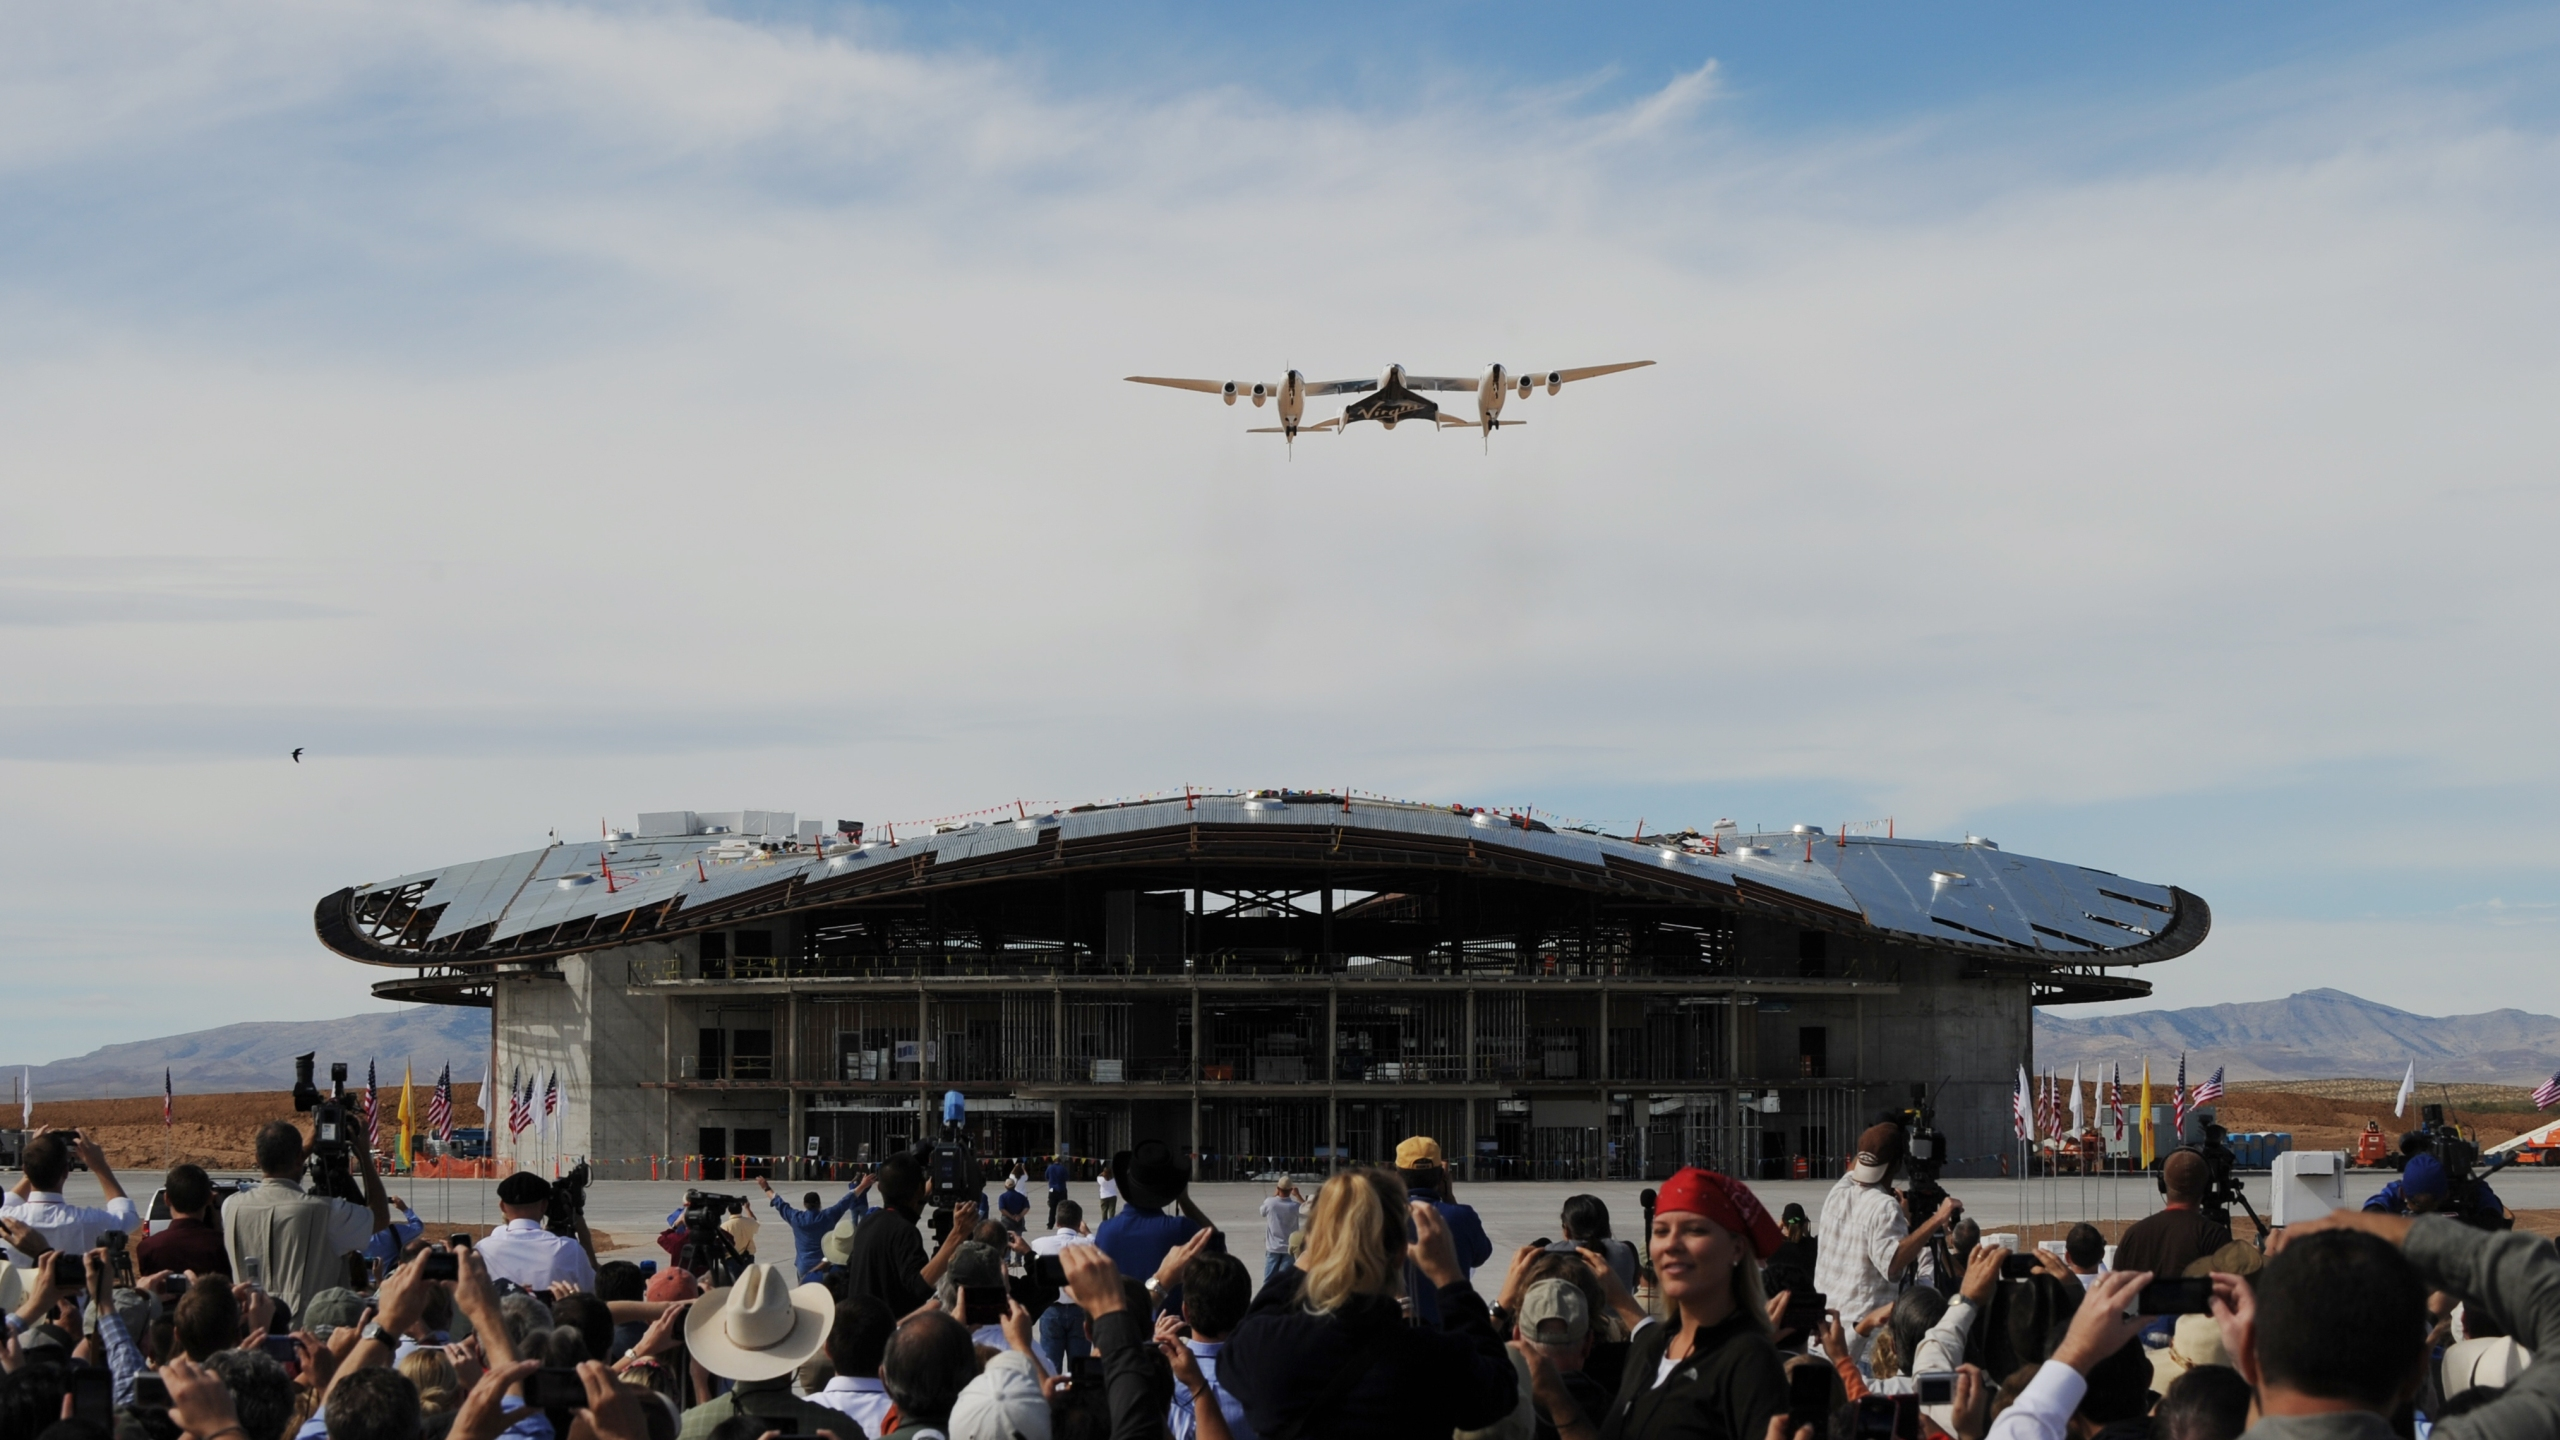 The Virgin Galactic VSS Enterprise spacecraft flies over its hanger before its first public landing during the Spaceport America runway dedication ceremony near Las Cruces, New Mexico on October 22, 2010. (Credit: MARK RALSTON/AFP/Getty Images)